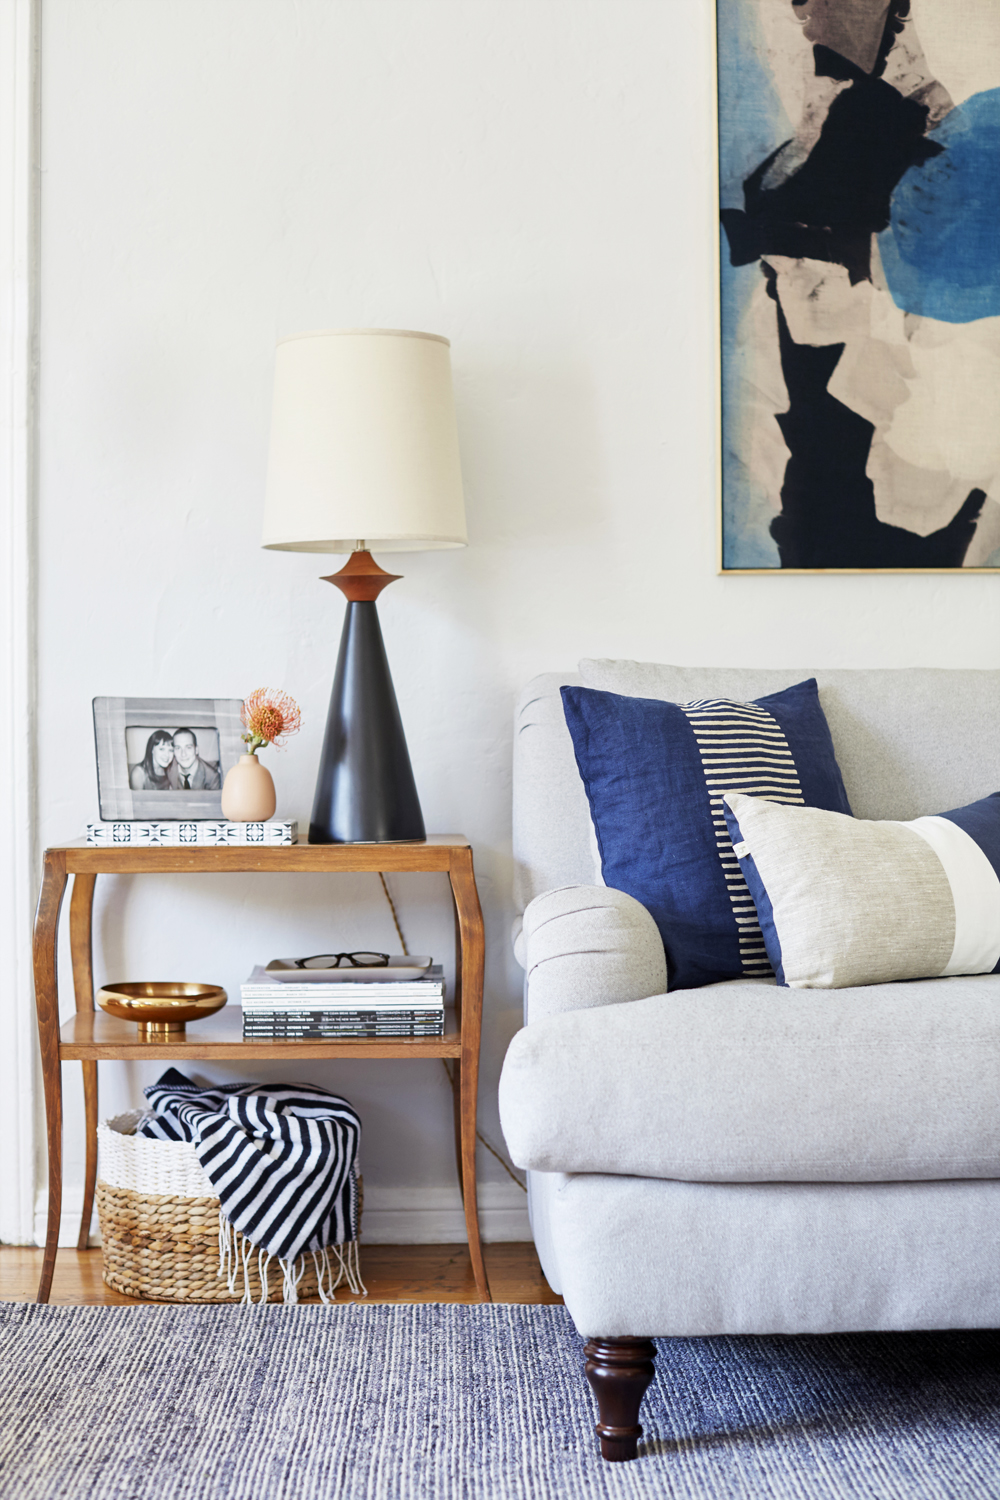 ginny_macdonald_side_table_sofa